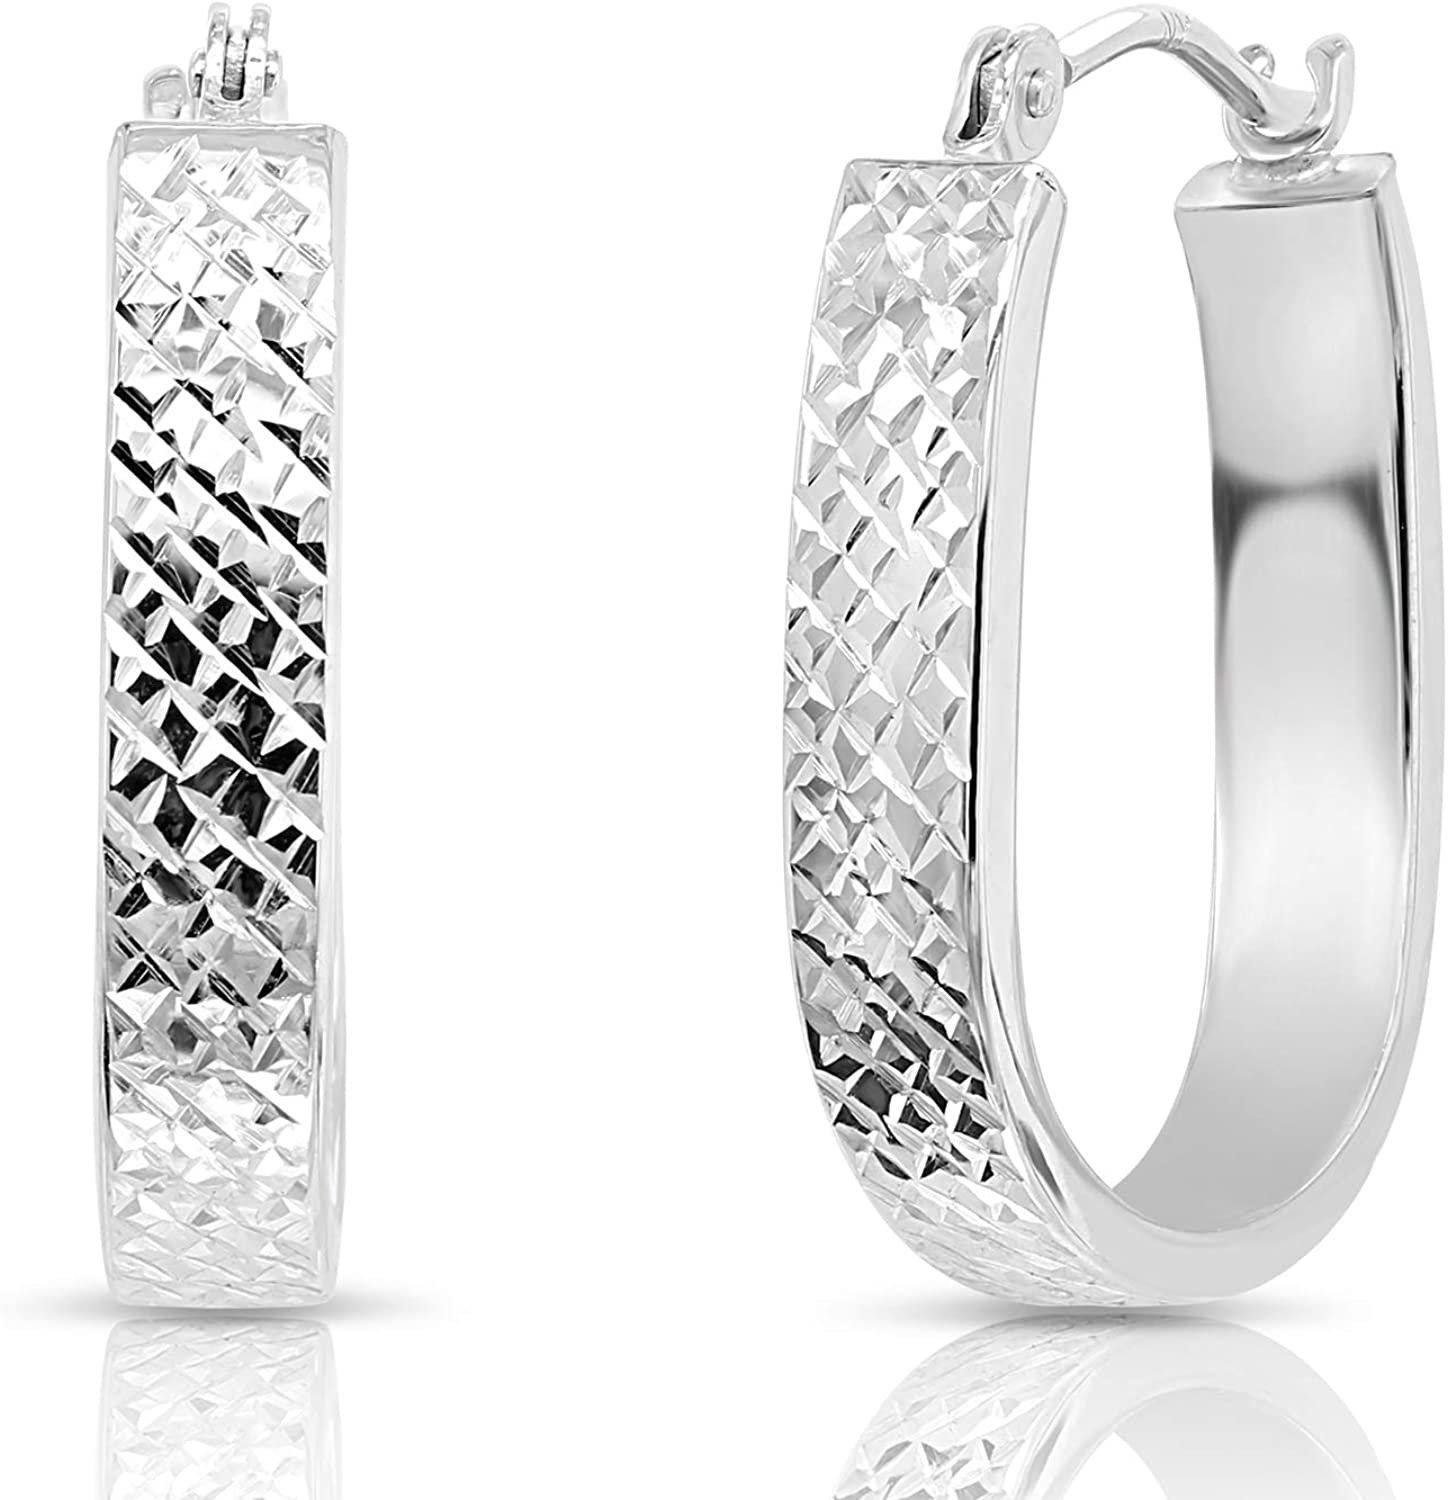 14k White Gold Max 48% OFF Ranking TOP1 Small U-shaped Hoop Oval Earrings